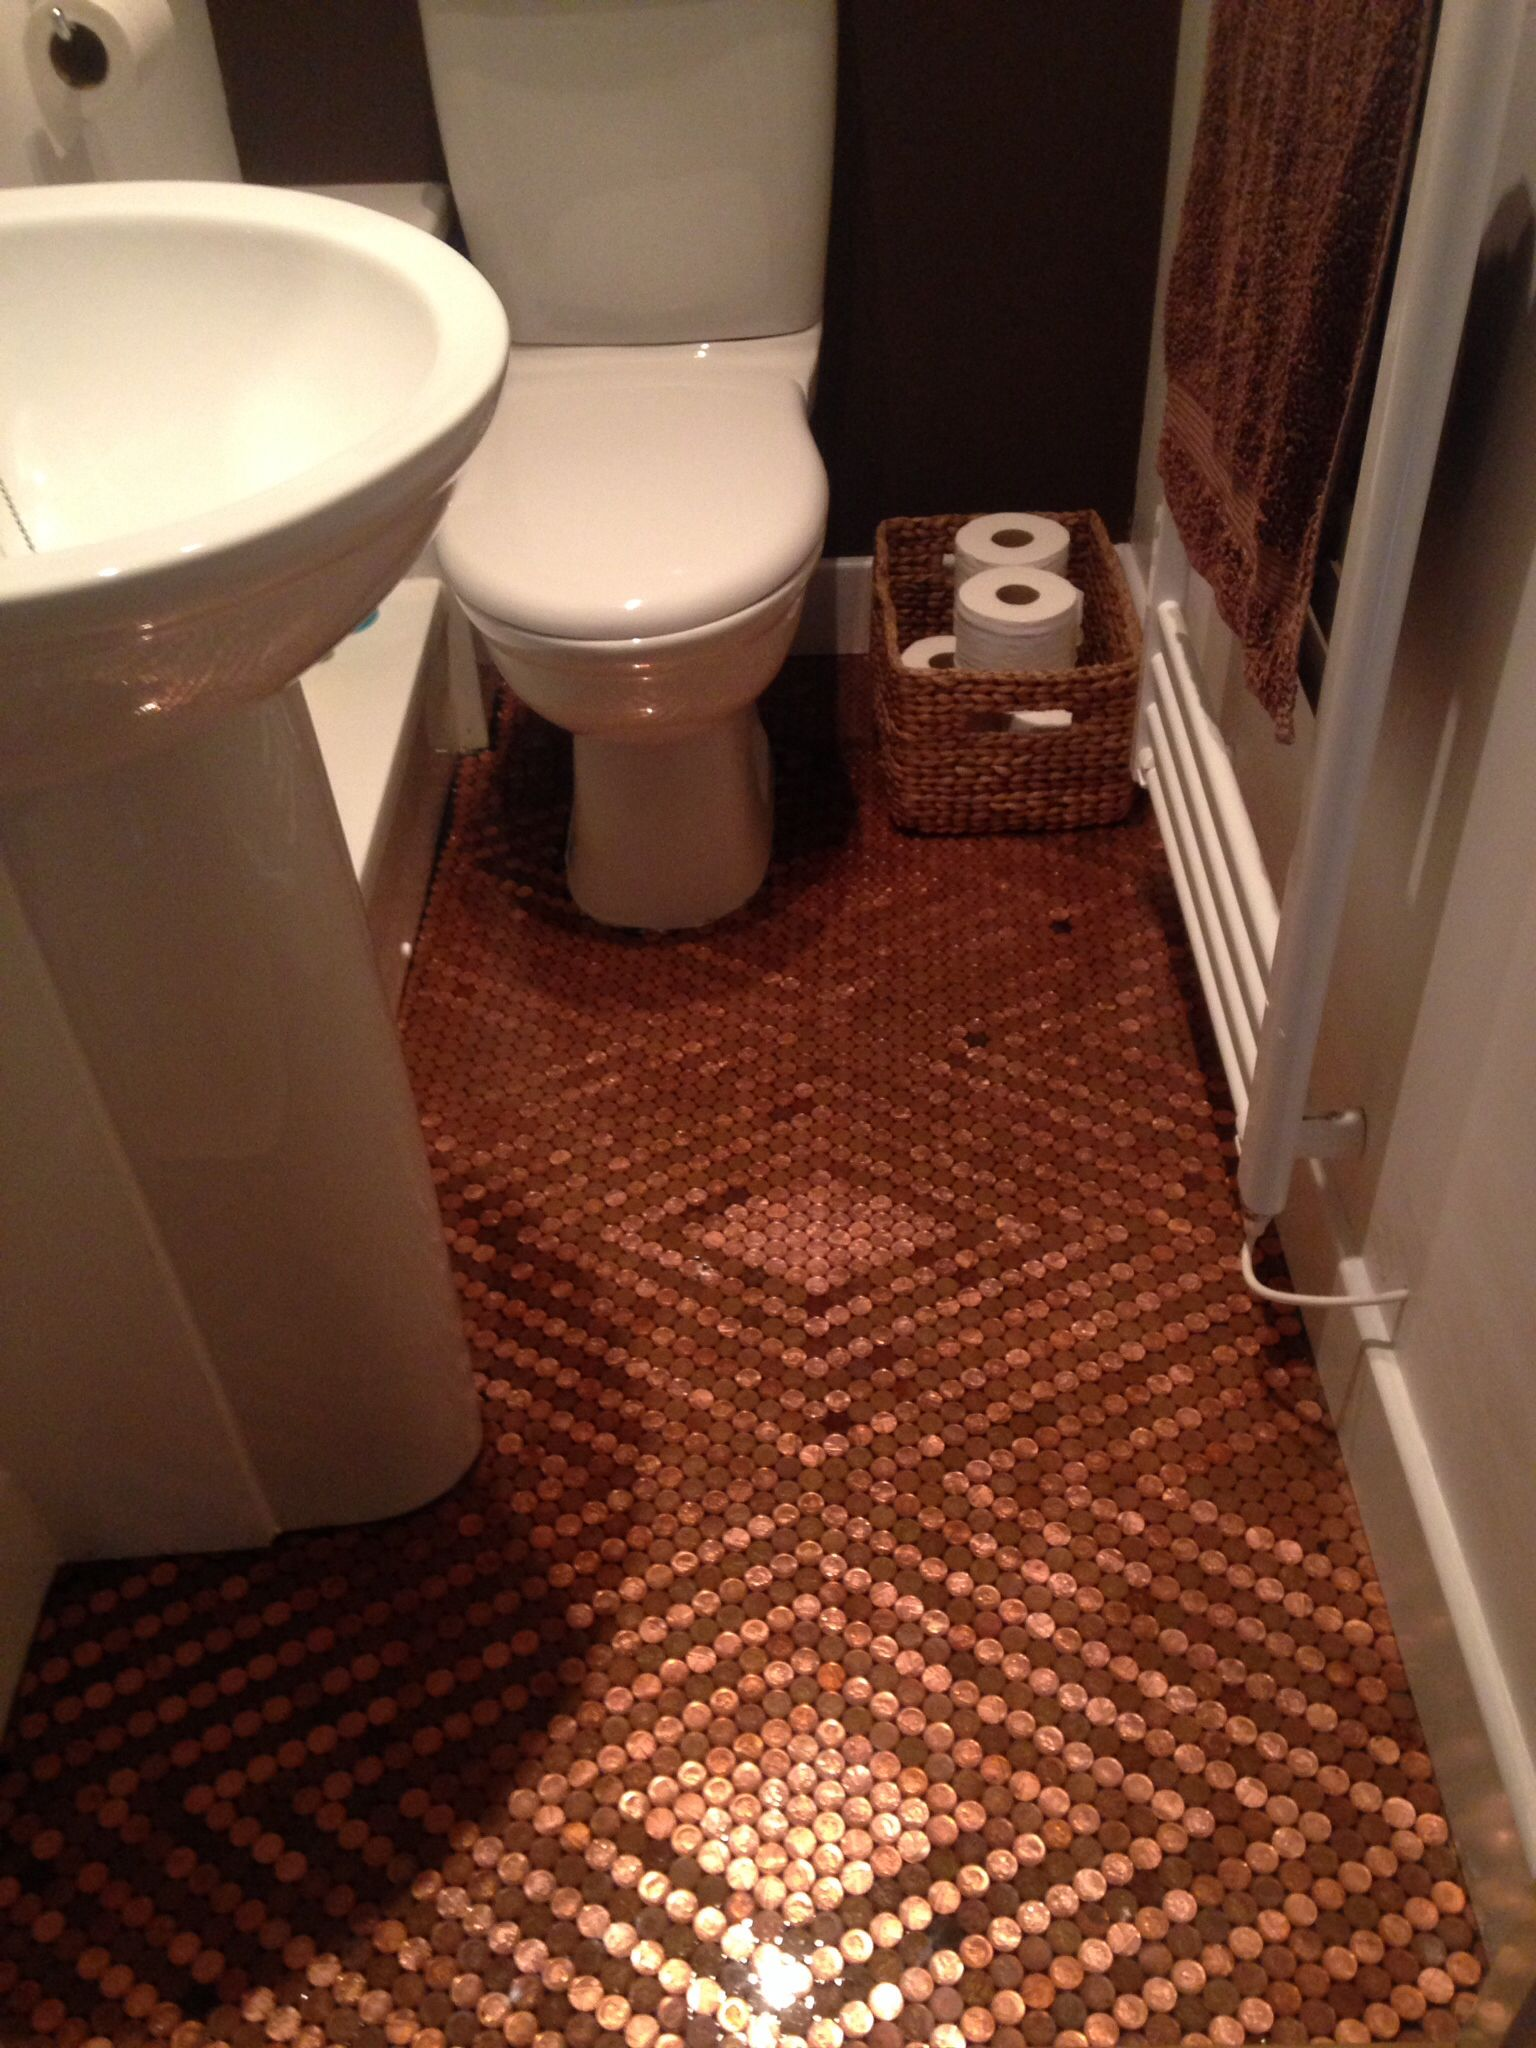 The best diy flooring ideas of pinterest pinterest pennies do the whole damn thing in pennies haha that should add a bit of weight when pulling the bad boy solutioingenieria